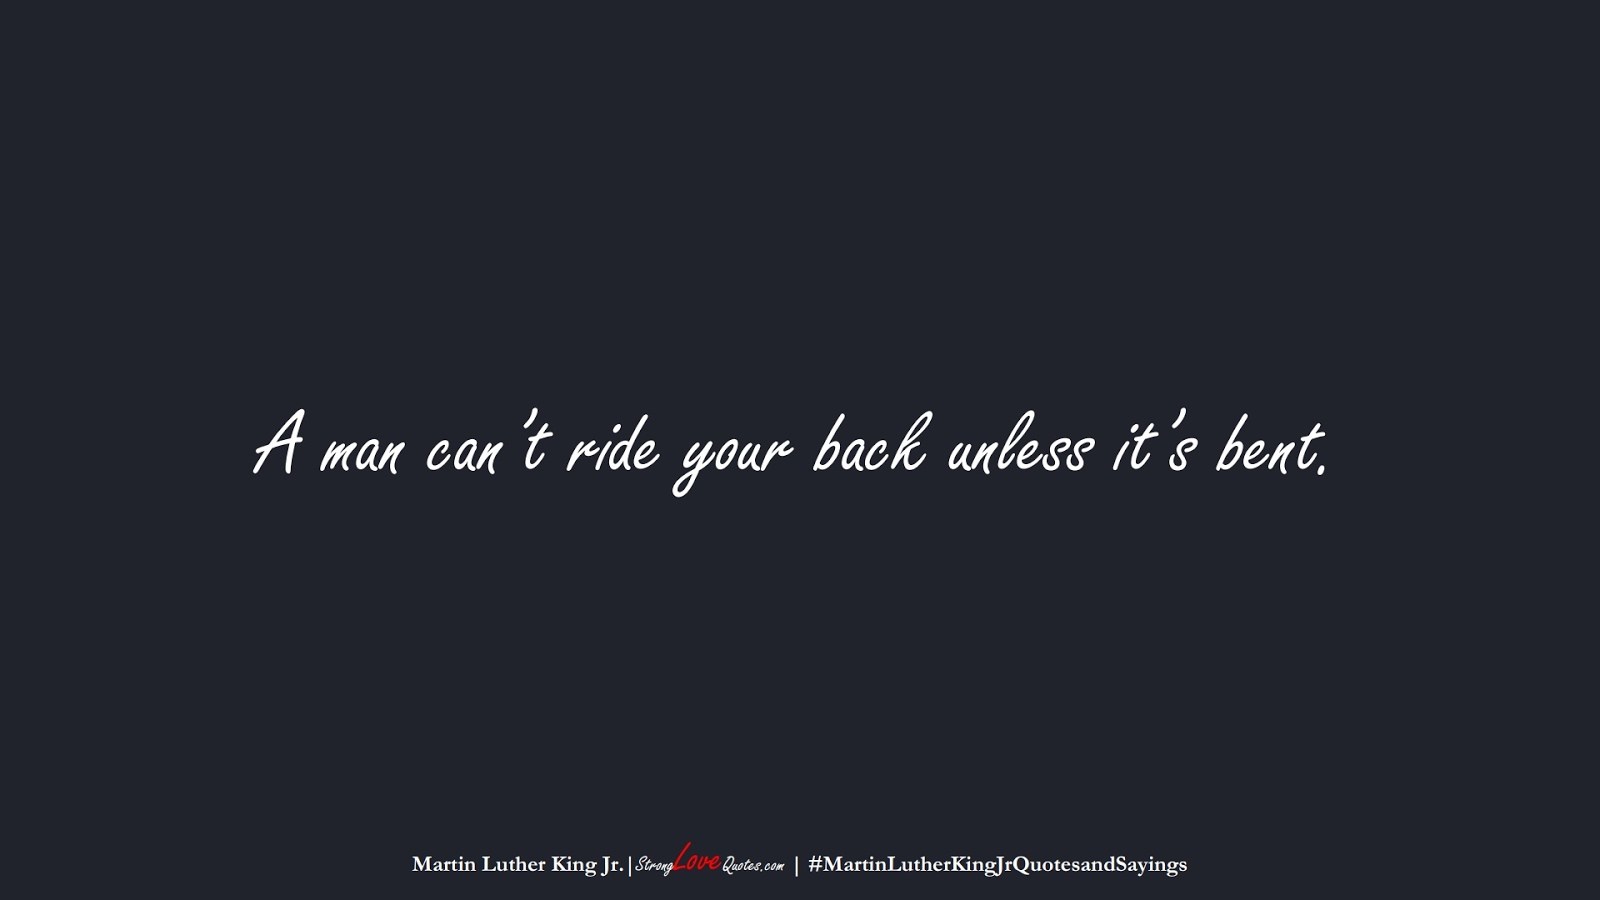 A man can't ride your back unless it's bent. (Martin Luther King Jr.);  #MartinLutherKingJrQuotesandSayings